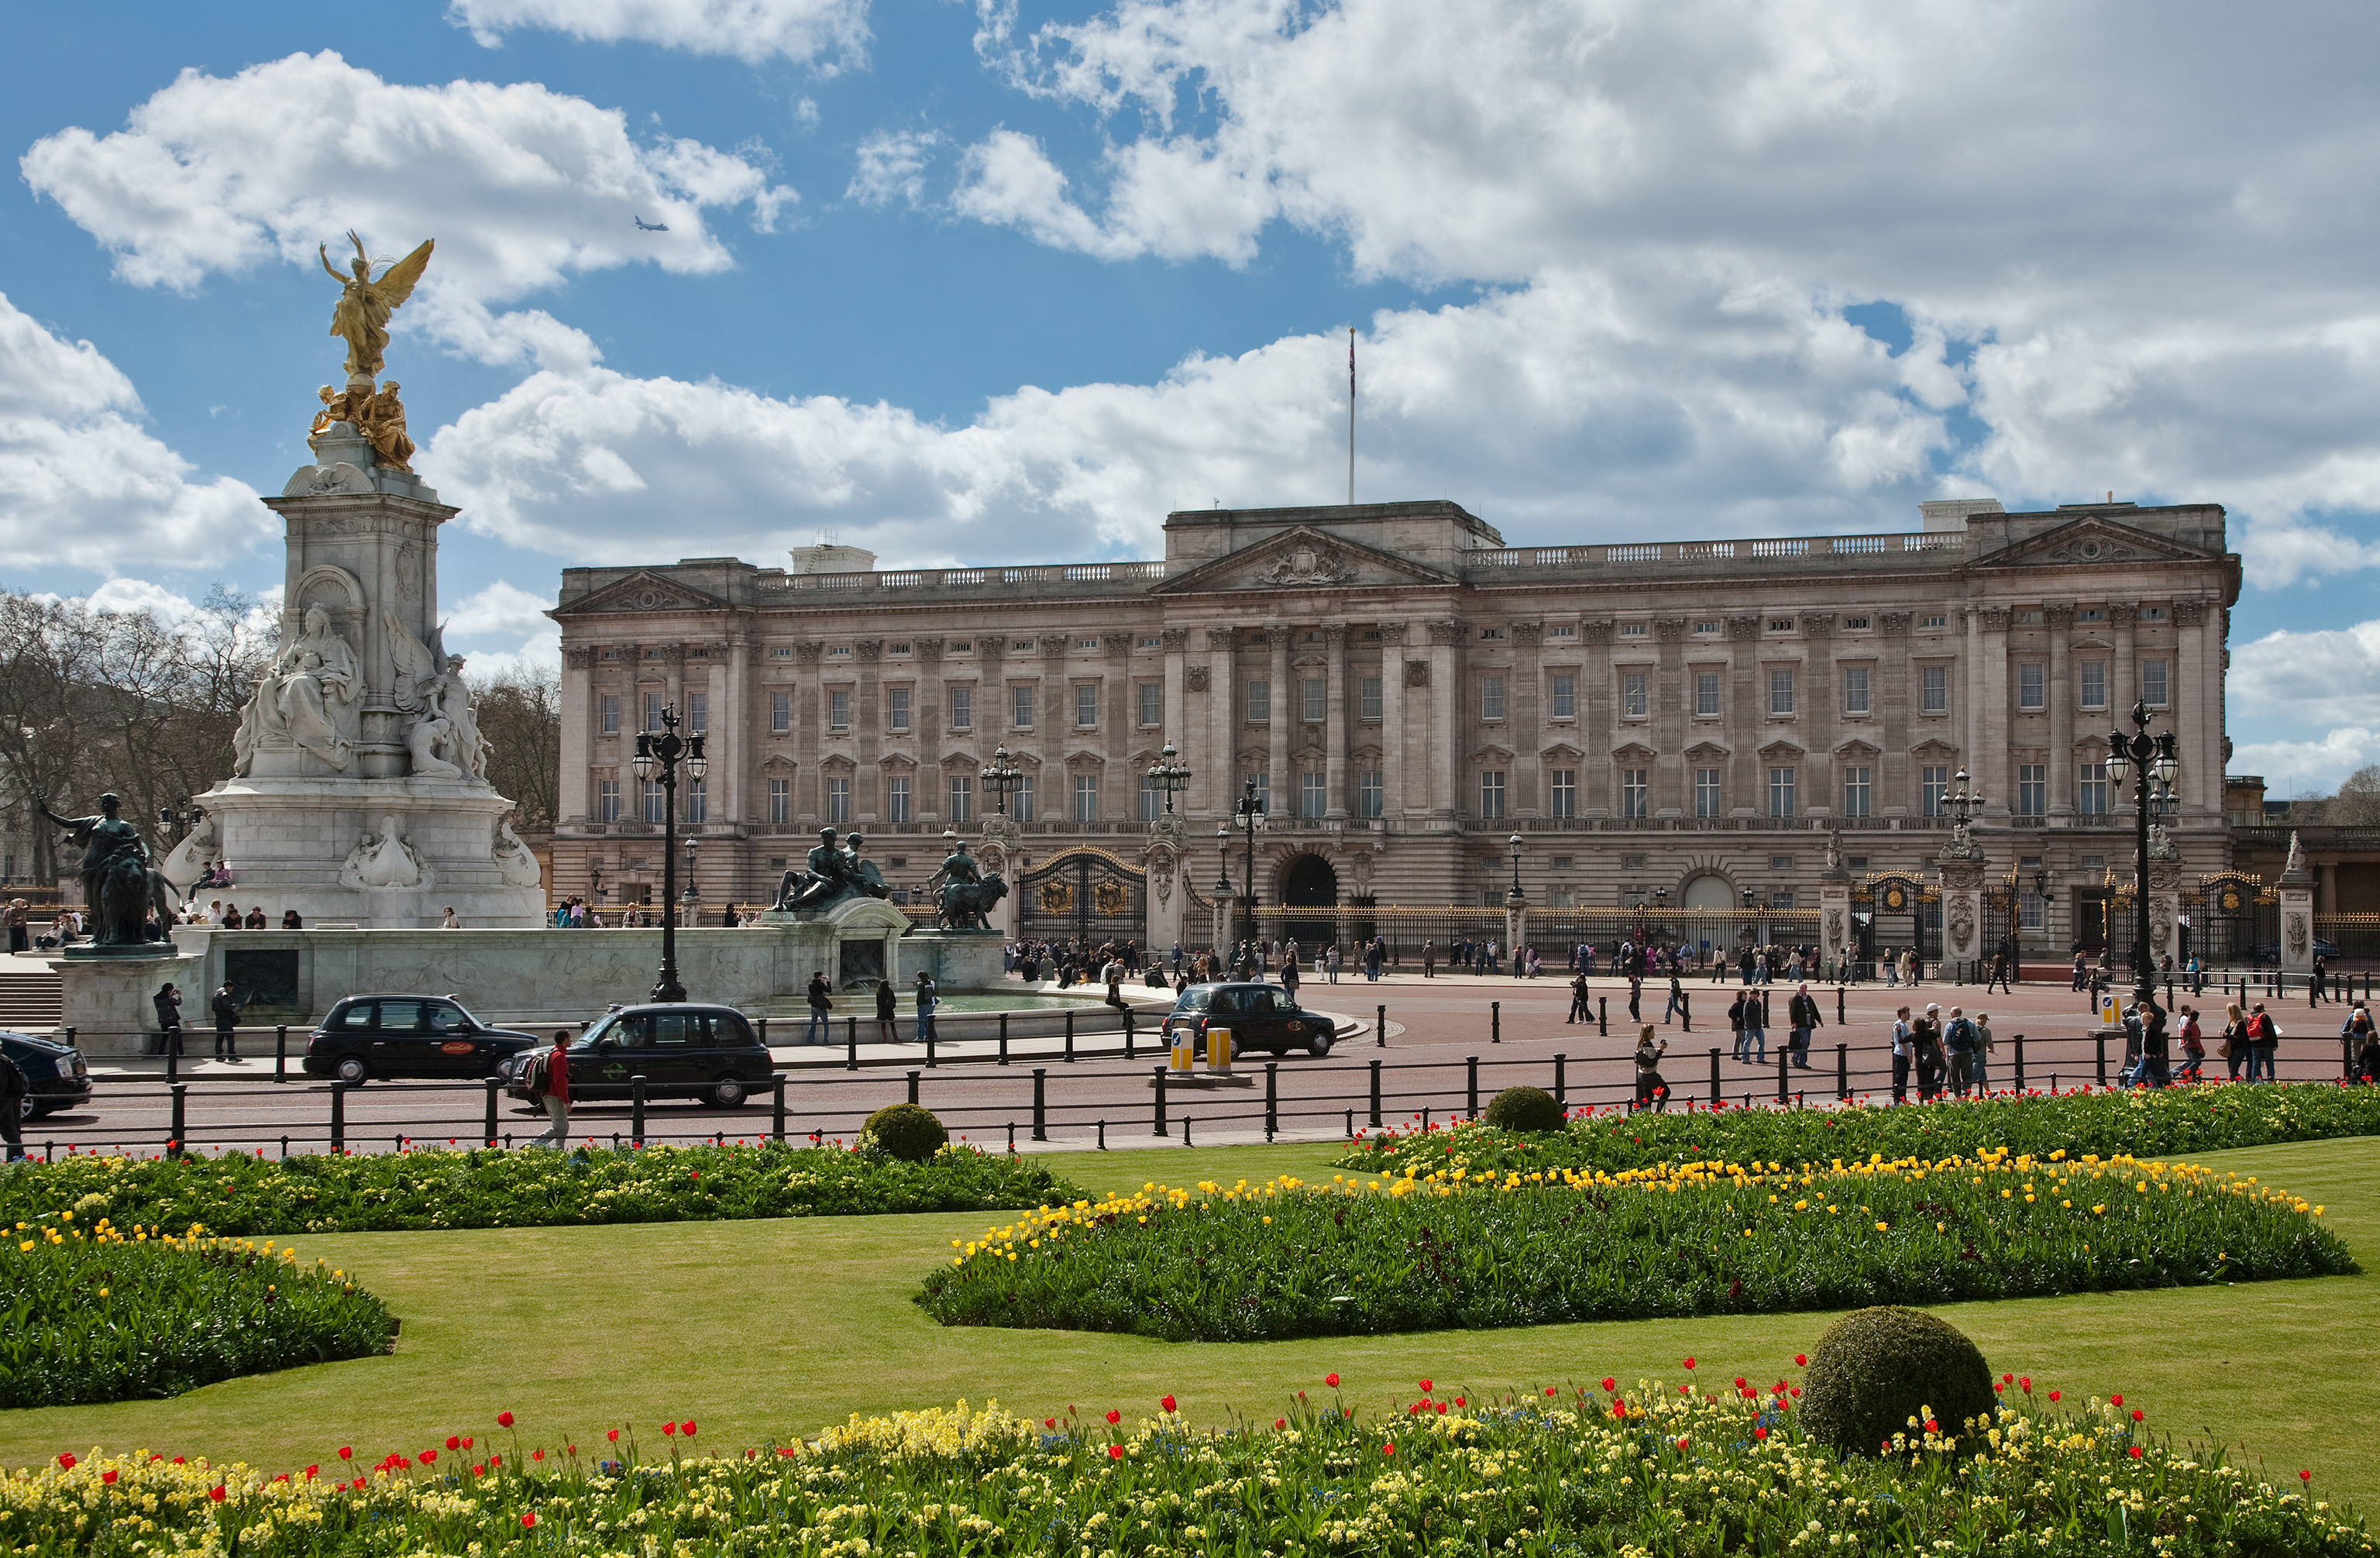 Buckingham Palace in United Kingdom